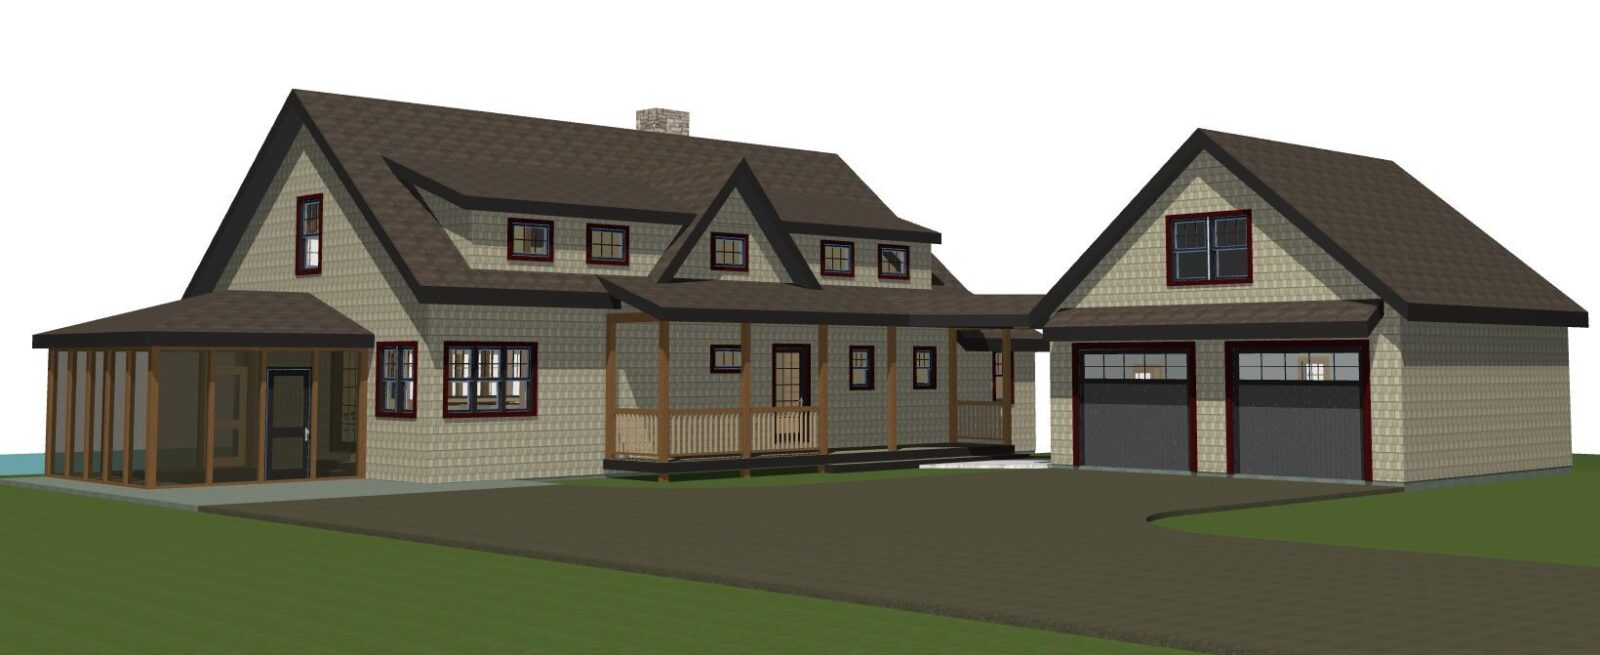 Post and beam floor plans yankee barn homes for Post and beam carriage house plans